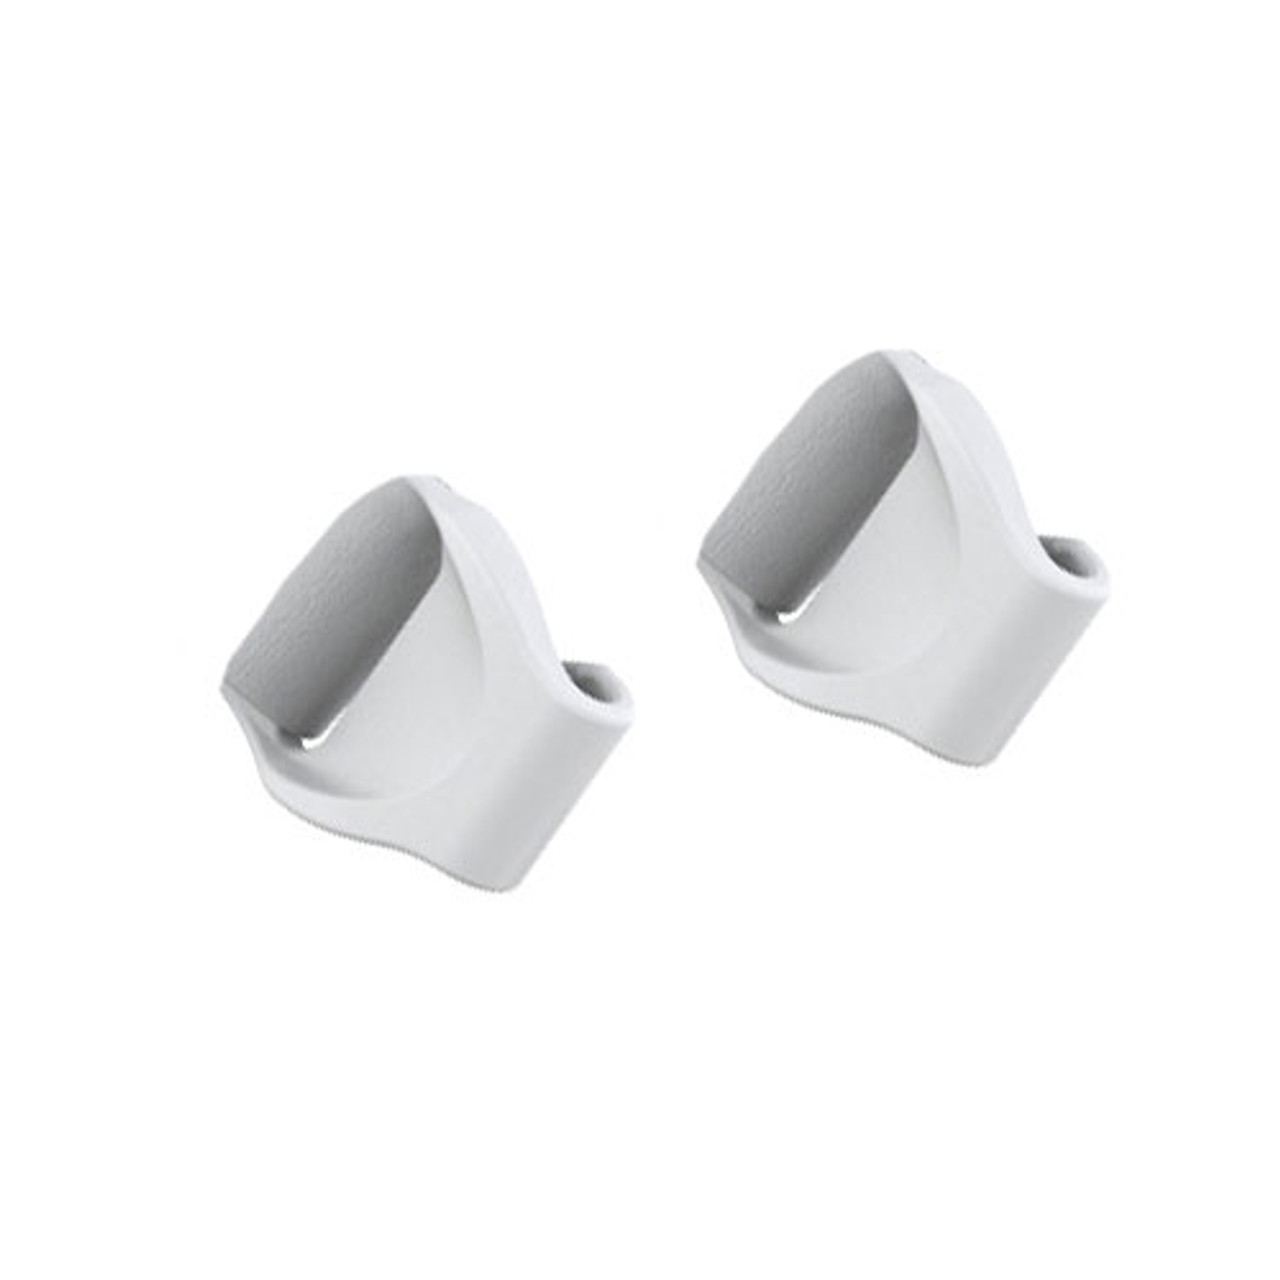 Fisher and Paykel Eson 2 Clips CPAP